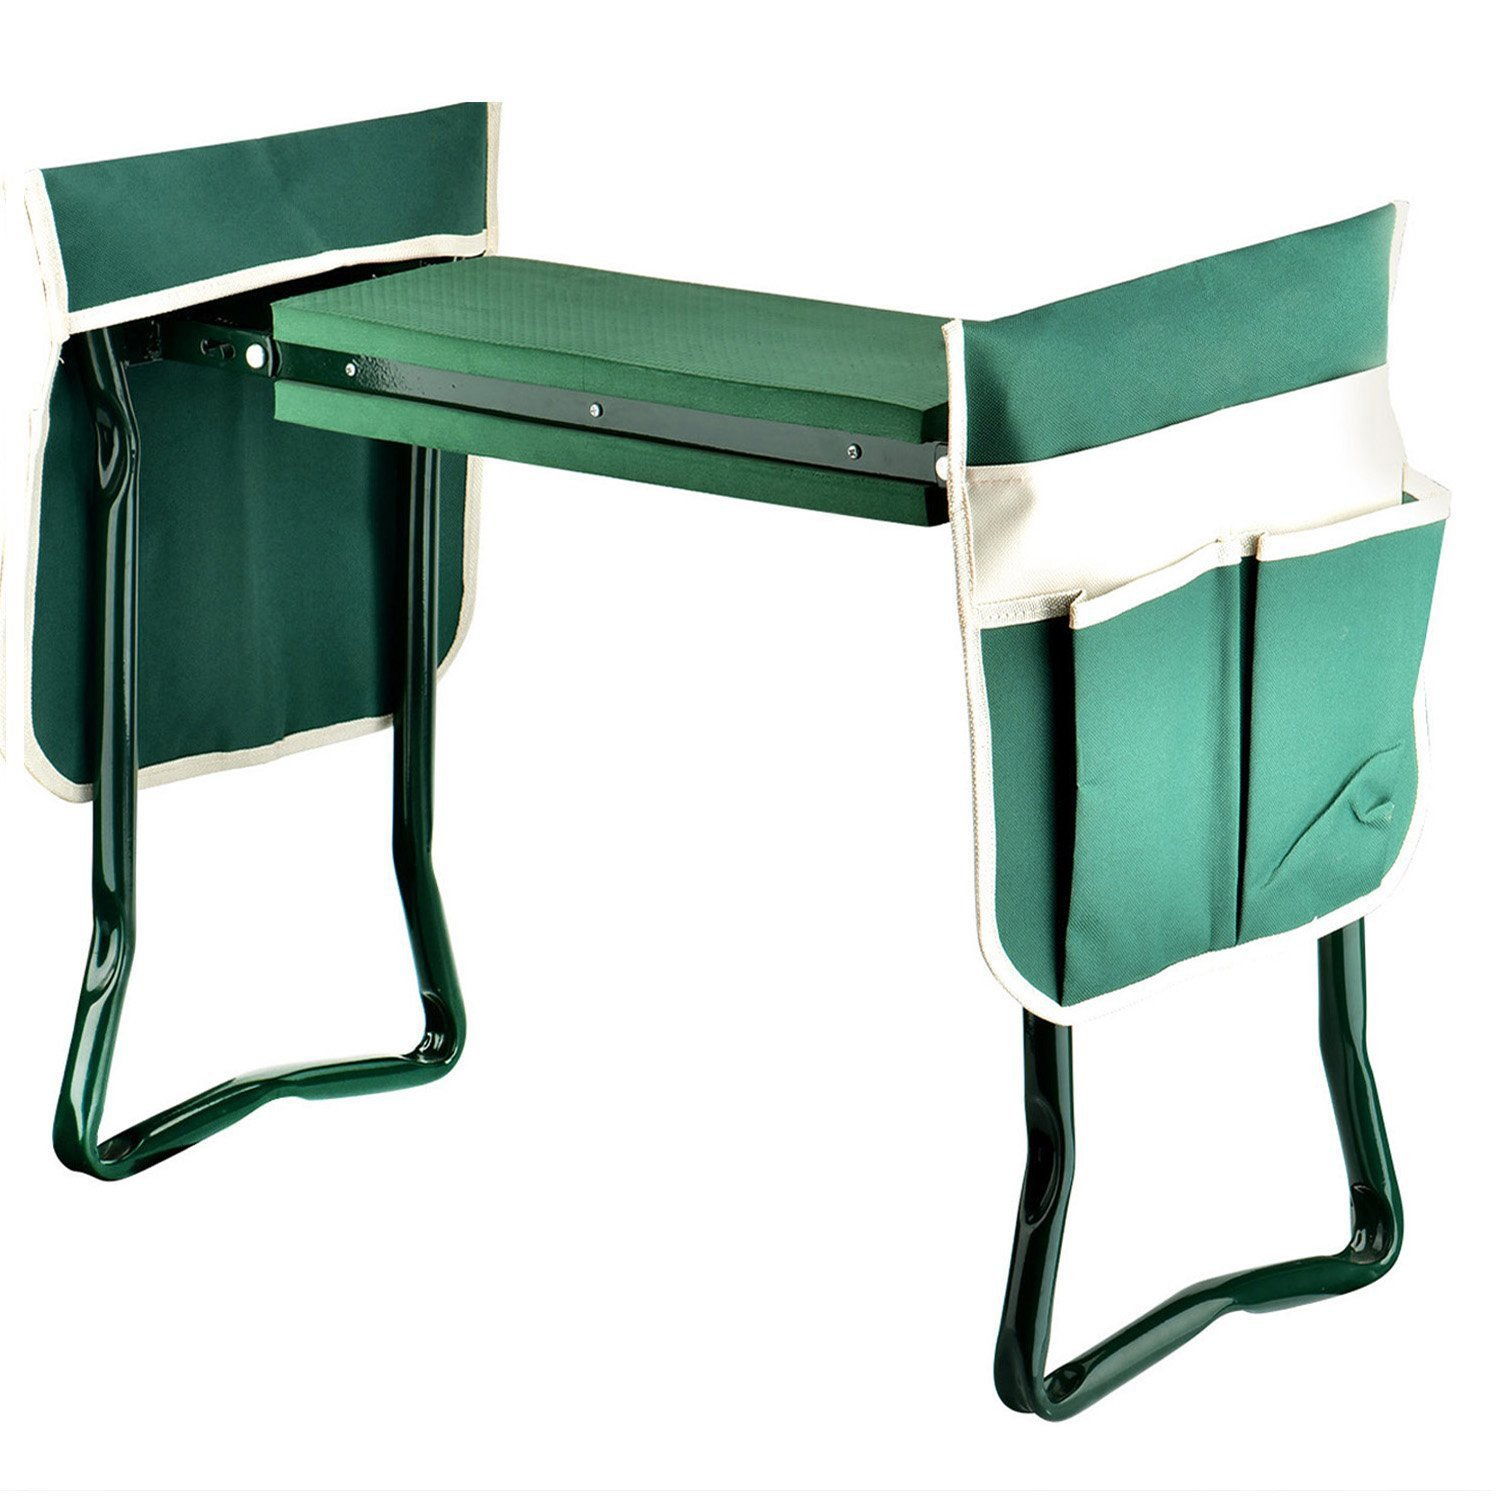 Garden Kneeler Seat,GYMAN Sturdy and Lightweight Garden Folding Bench Stool with EVA Kneeling Pad and Tool Pouch by GYMAN